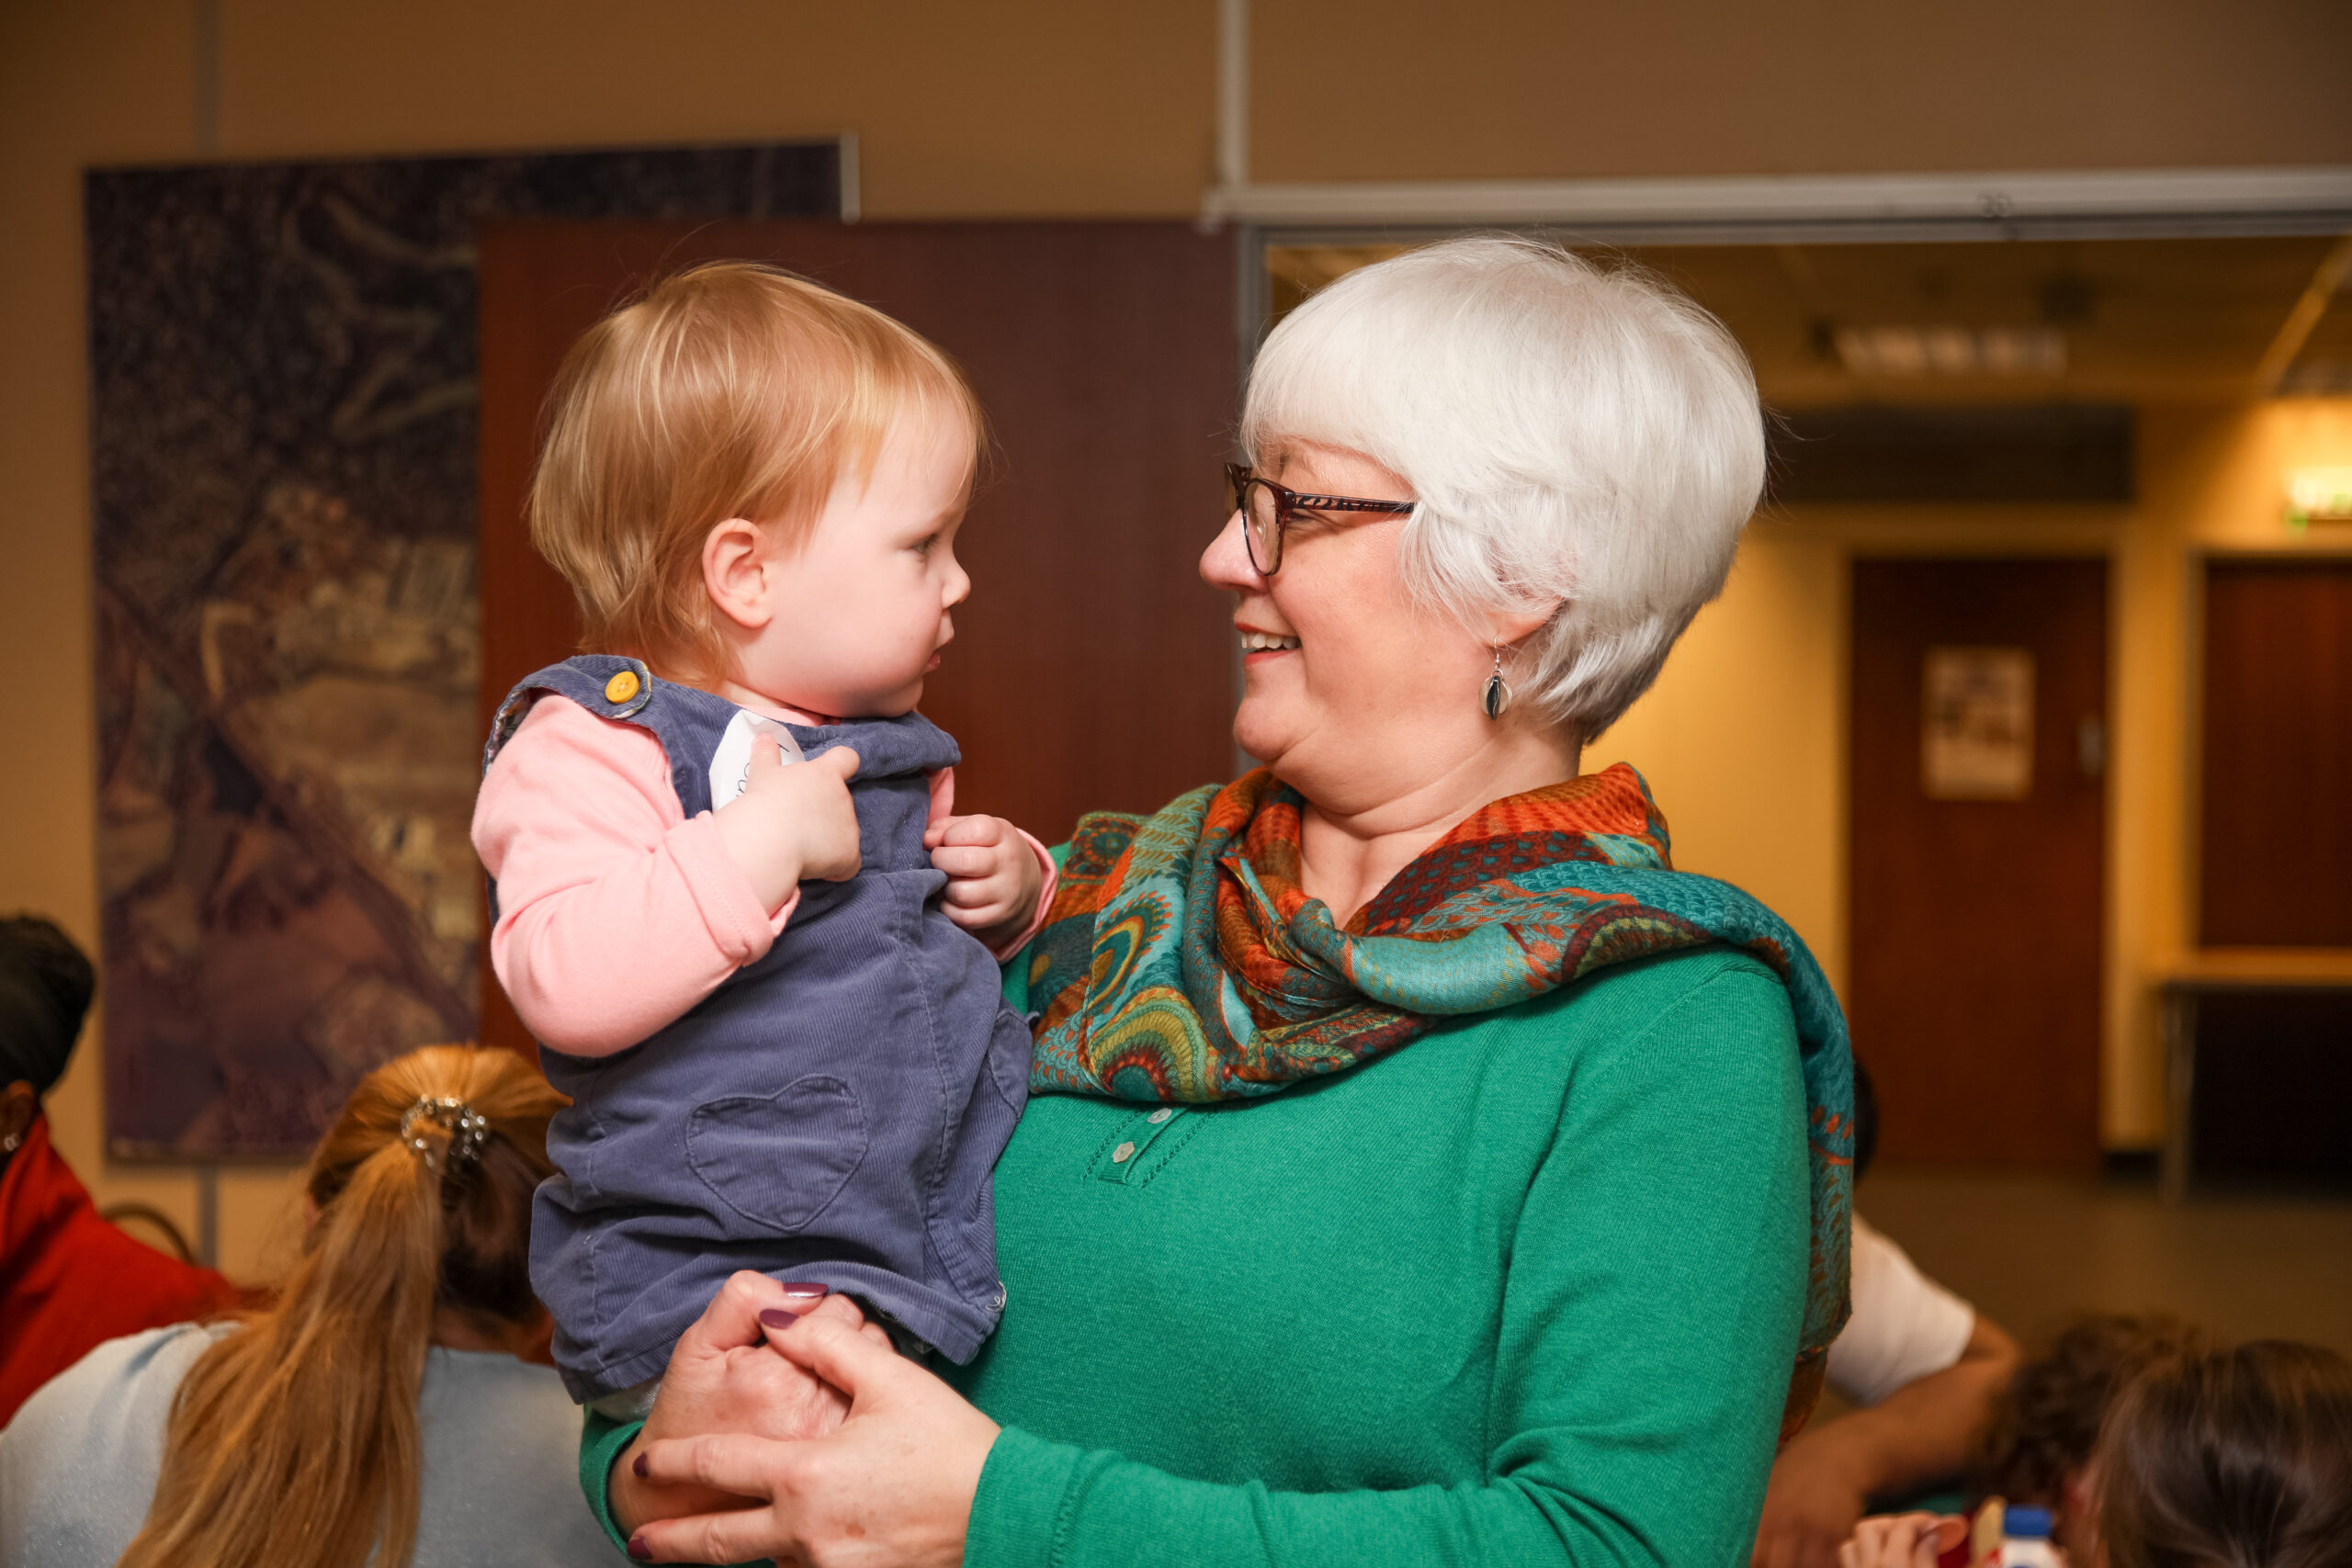 7. Lesley holds a young toddler at a family day. The toddler is looking directly at Lesley in a slightly quizzical way. Lesley is smiling and wearing a green jumper with green and orange scarf. Child is wearing a blue pinafore dress with pink jumper beneath.